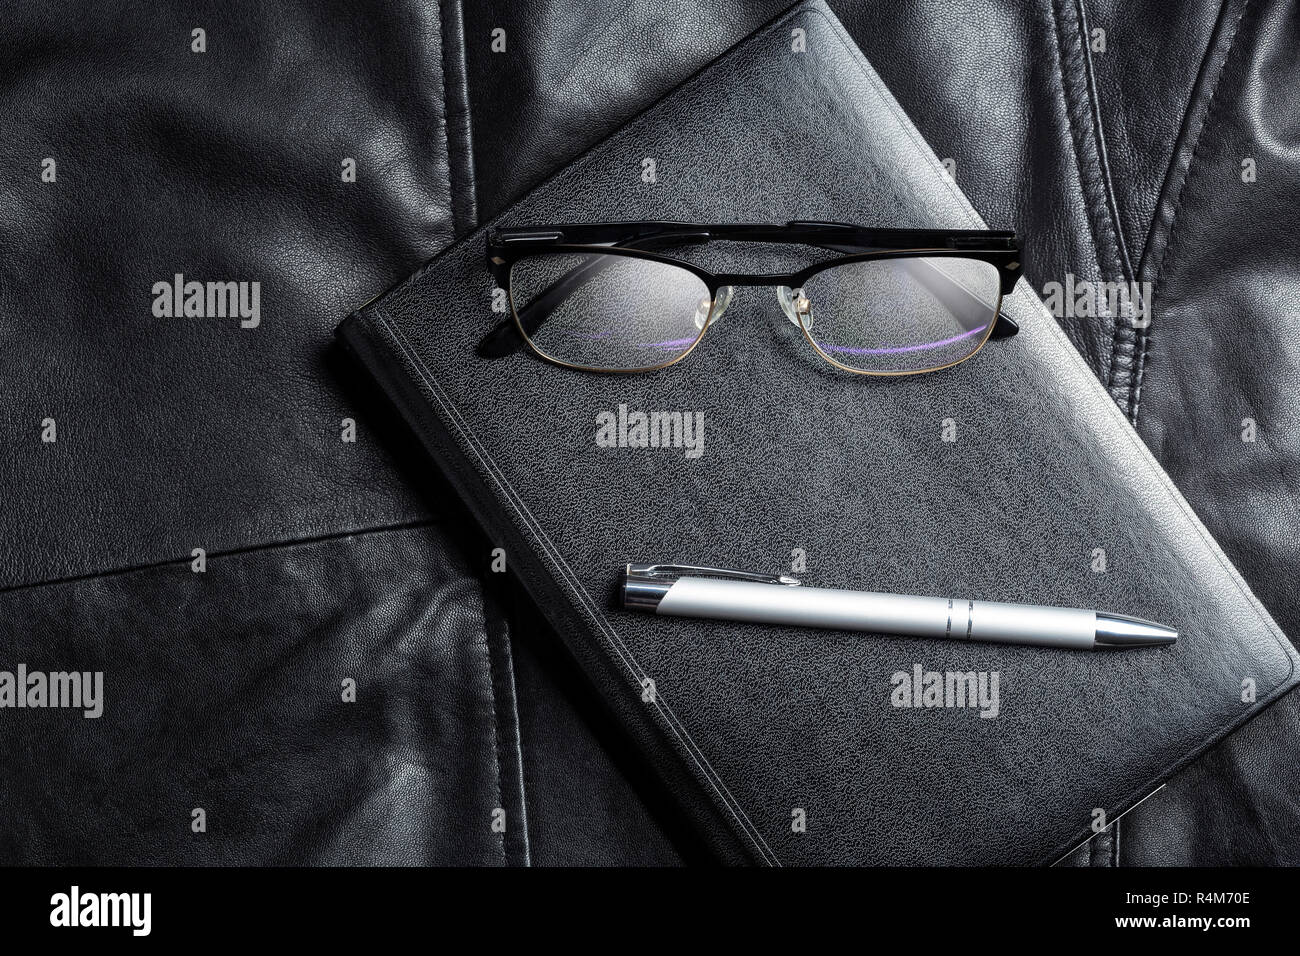 Notebook, glasses and pix over black leather background. Business minimalist lifestile presentation background. - Stock Image